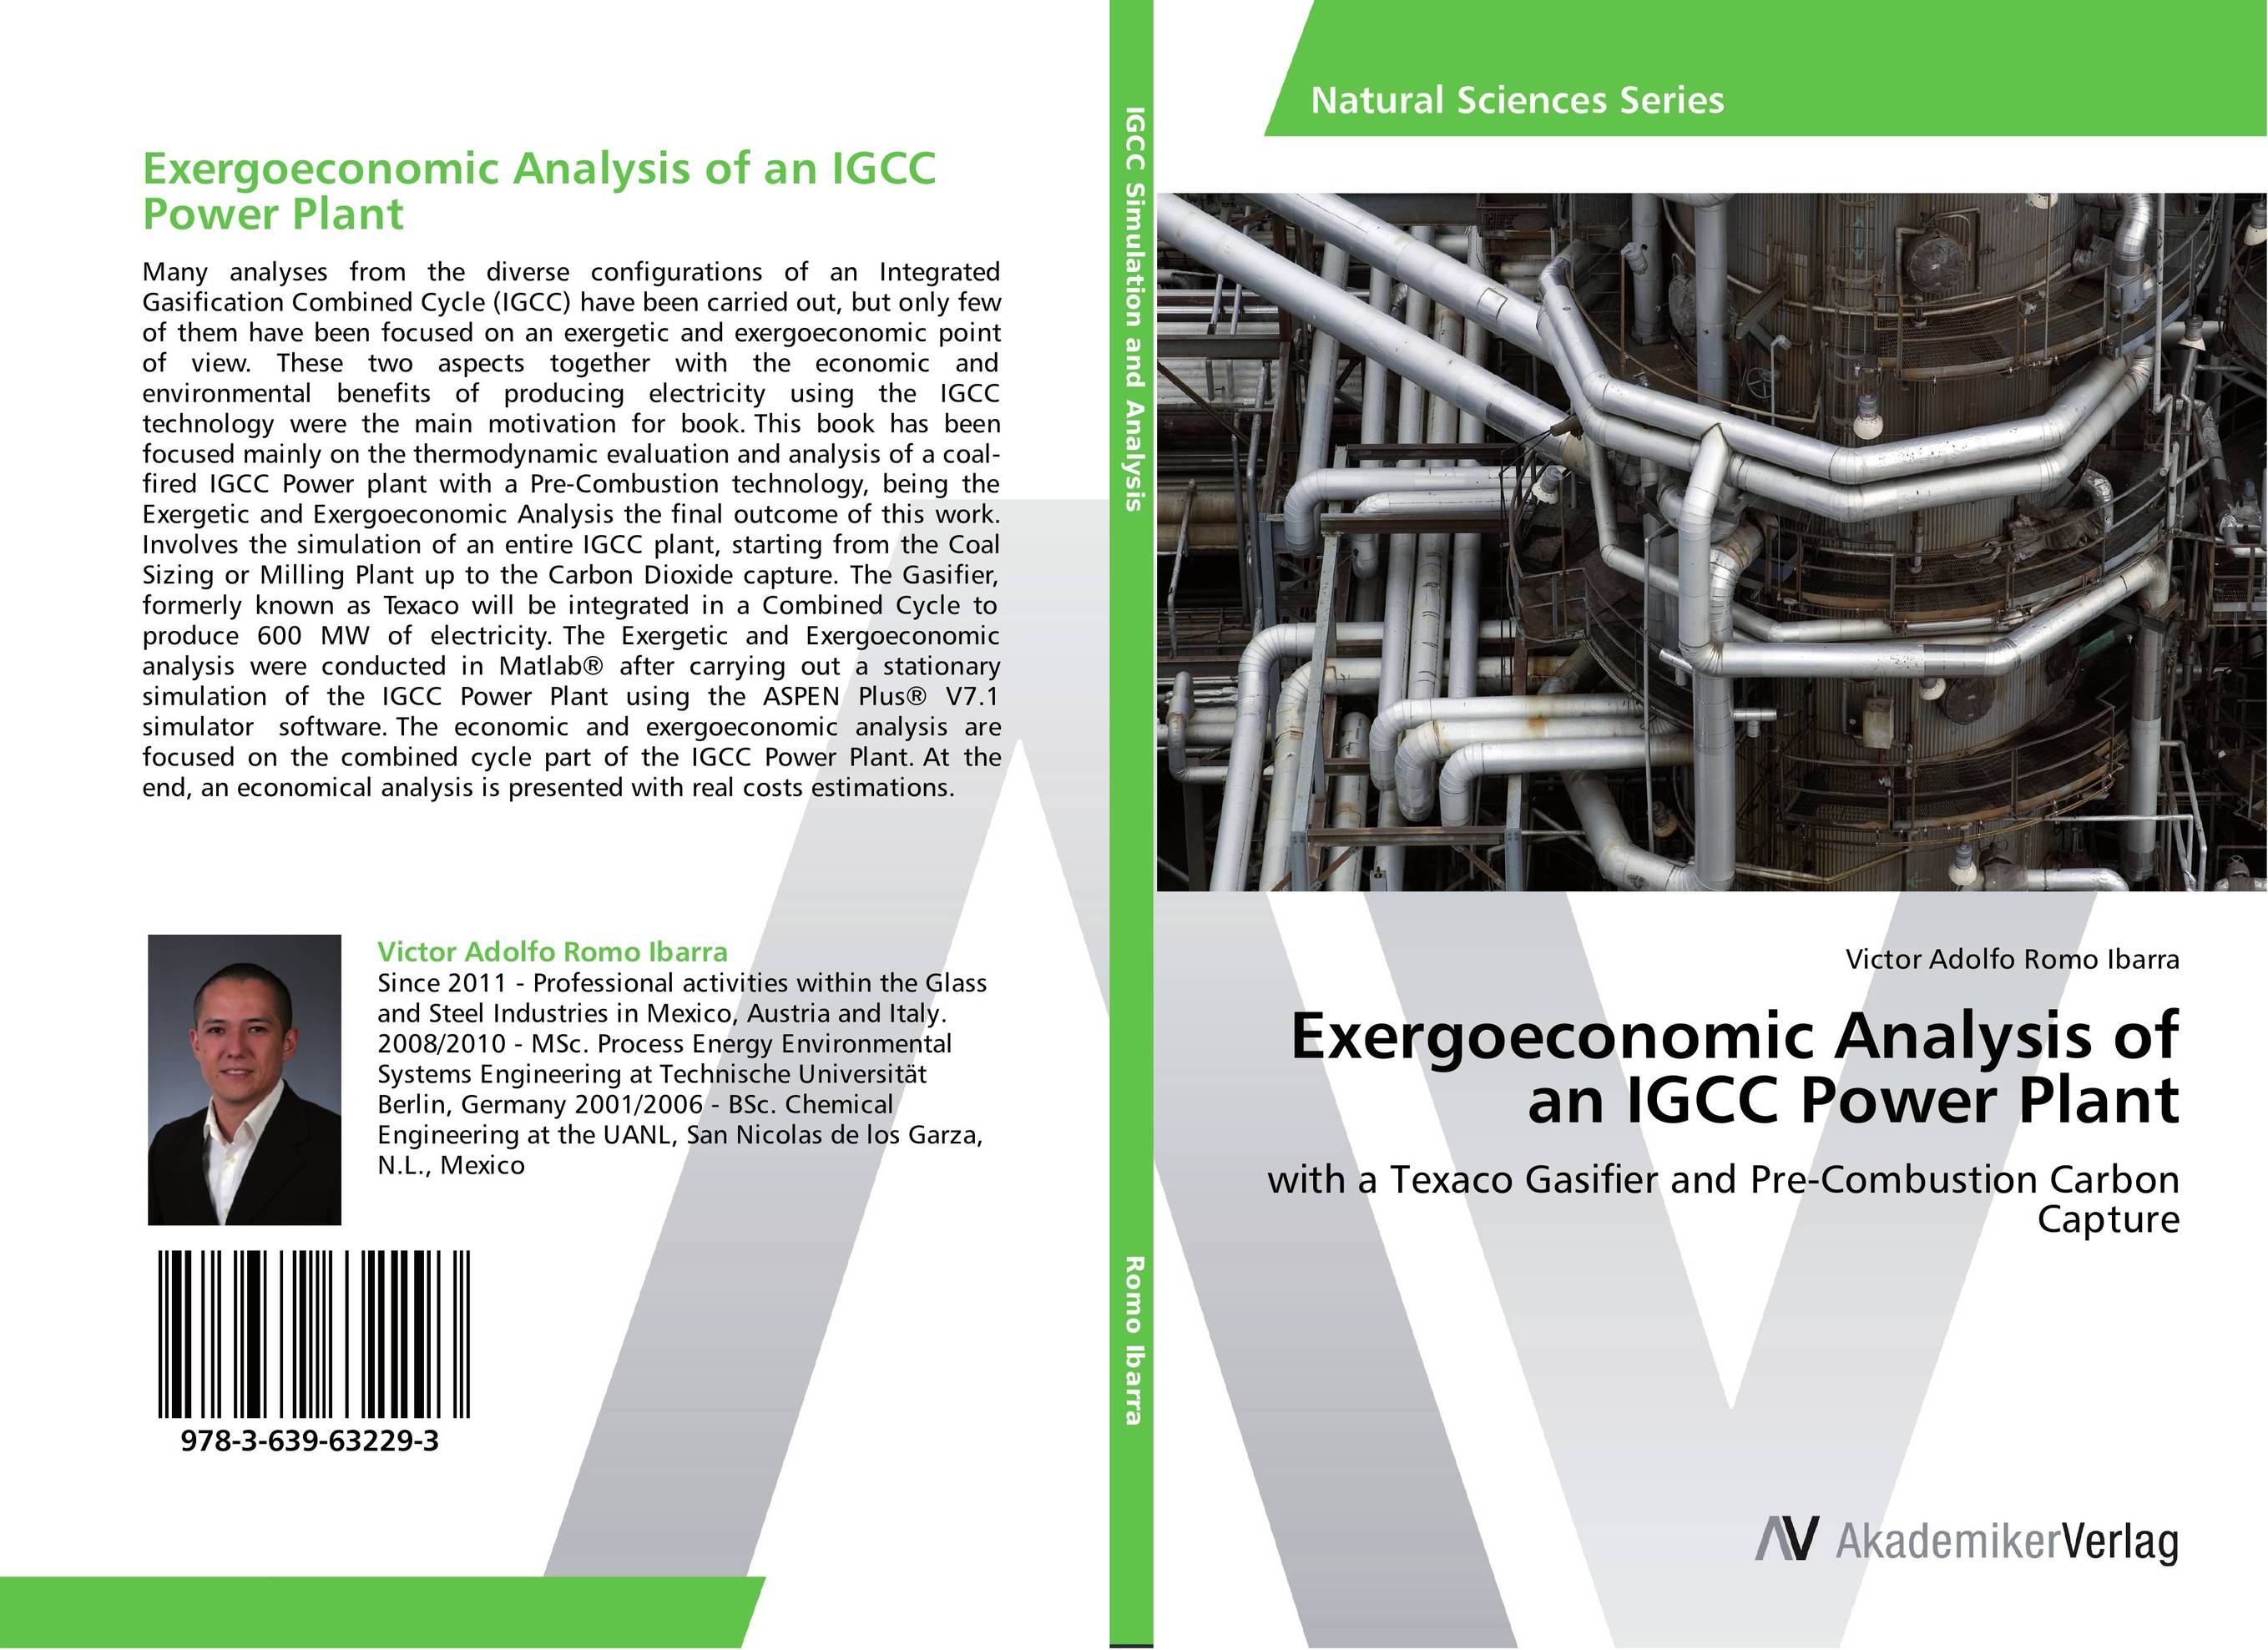 Exergoeconomic Analysis of an IGCC Power Plant an economic analysis of the environmental impacts of livestock grazing